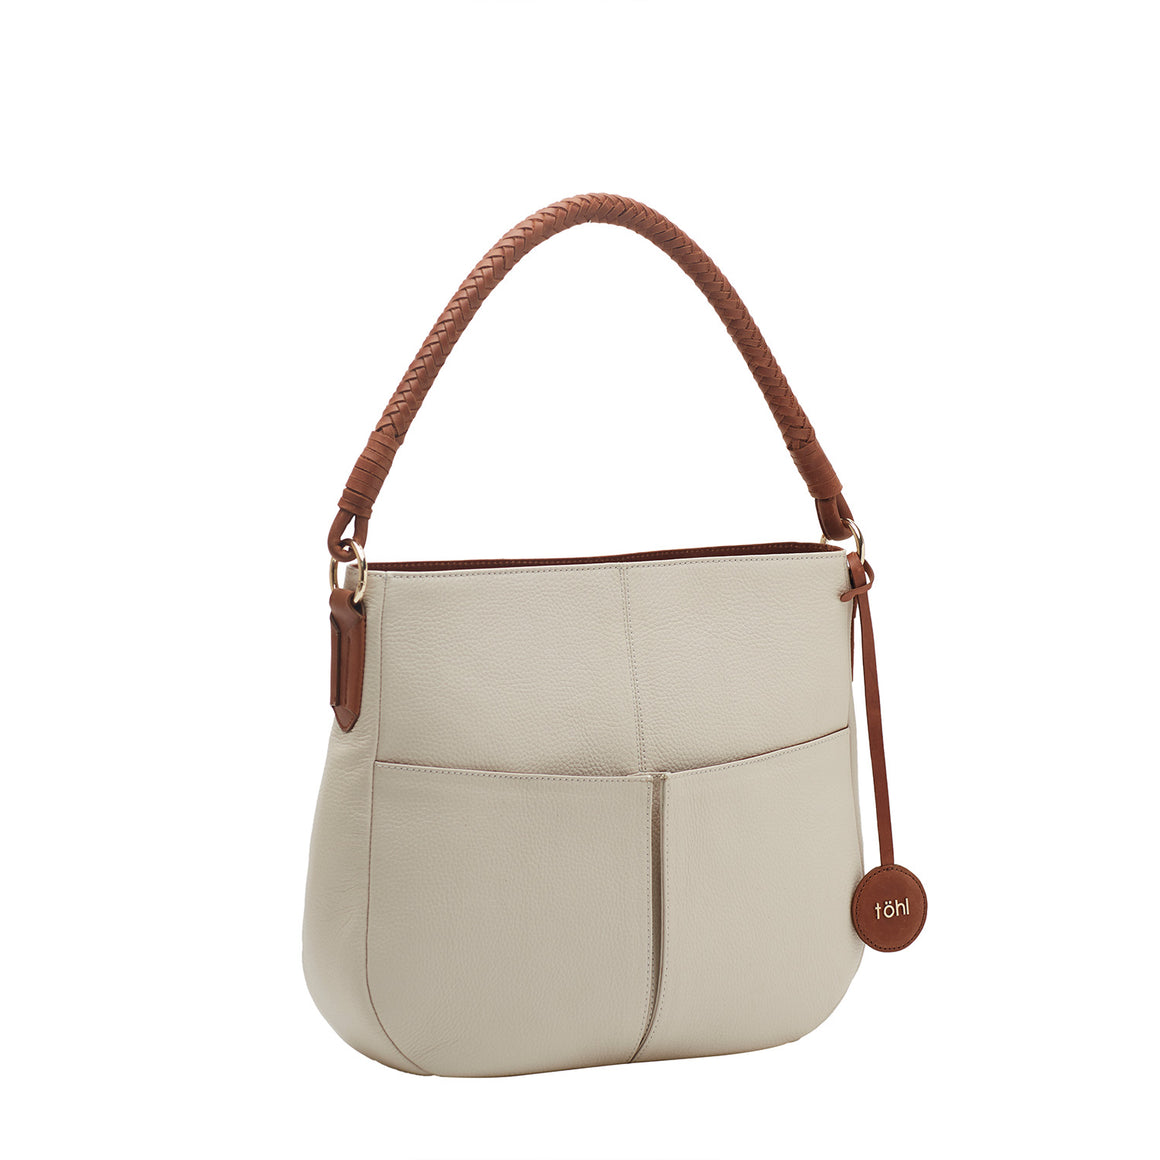 SB 0025 - TOHL SUTTON WOMEN'S SHOULDER BAG - WHITE